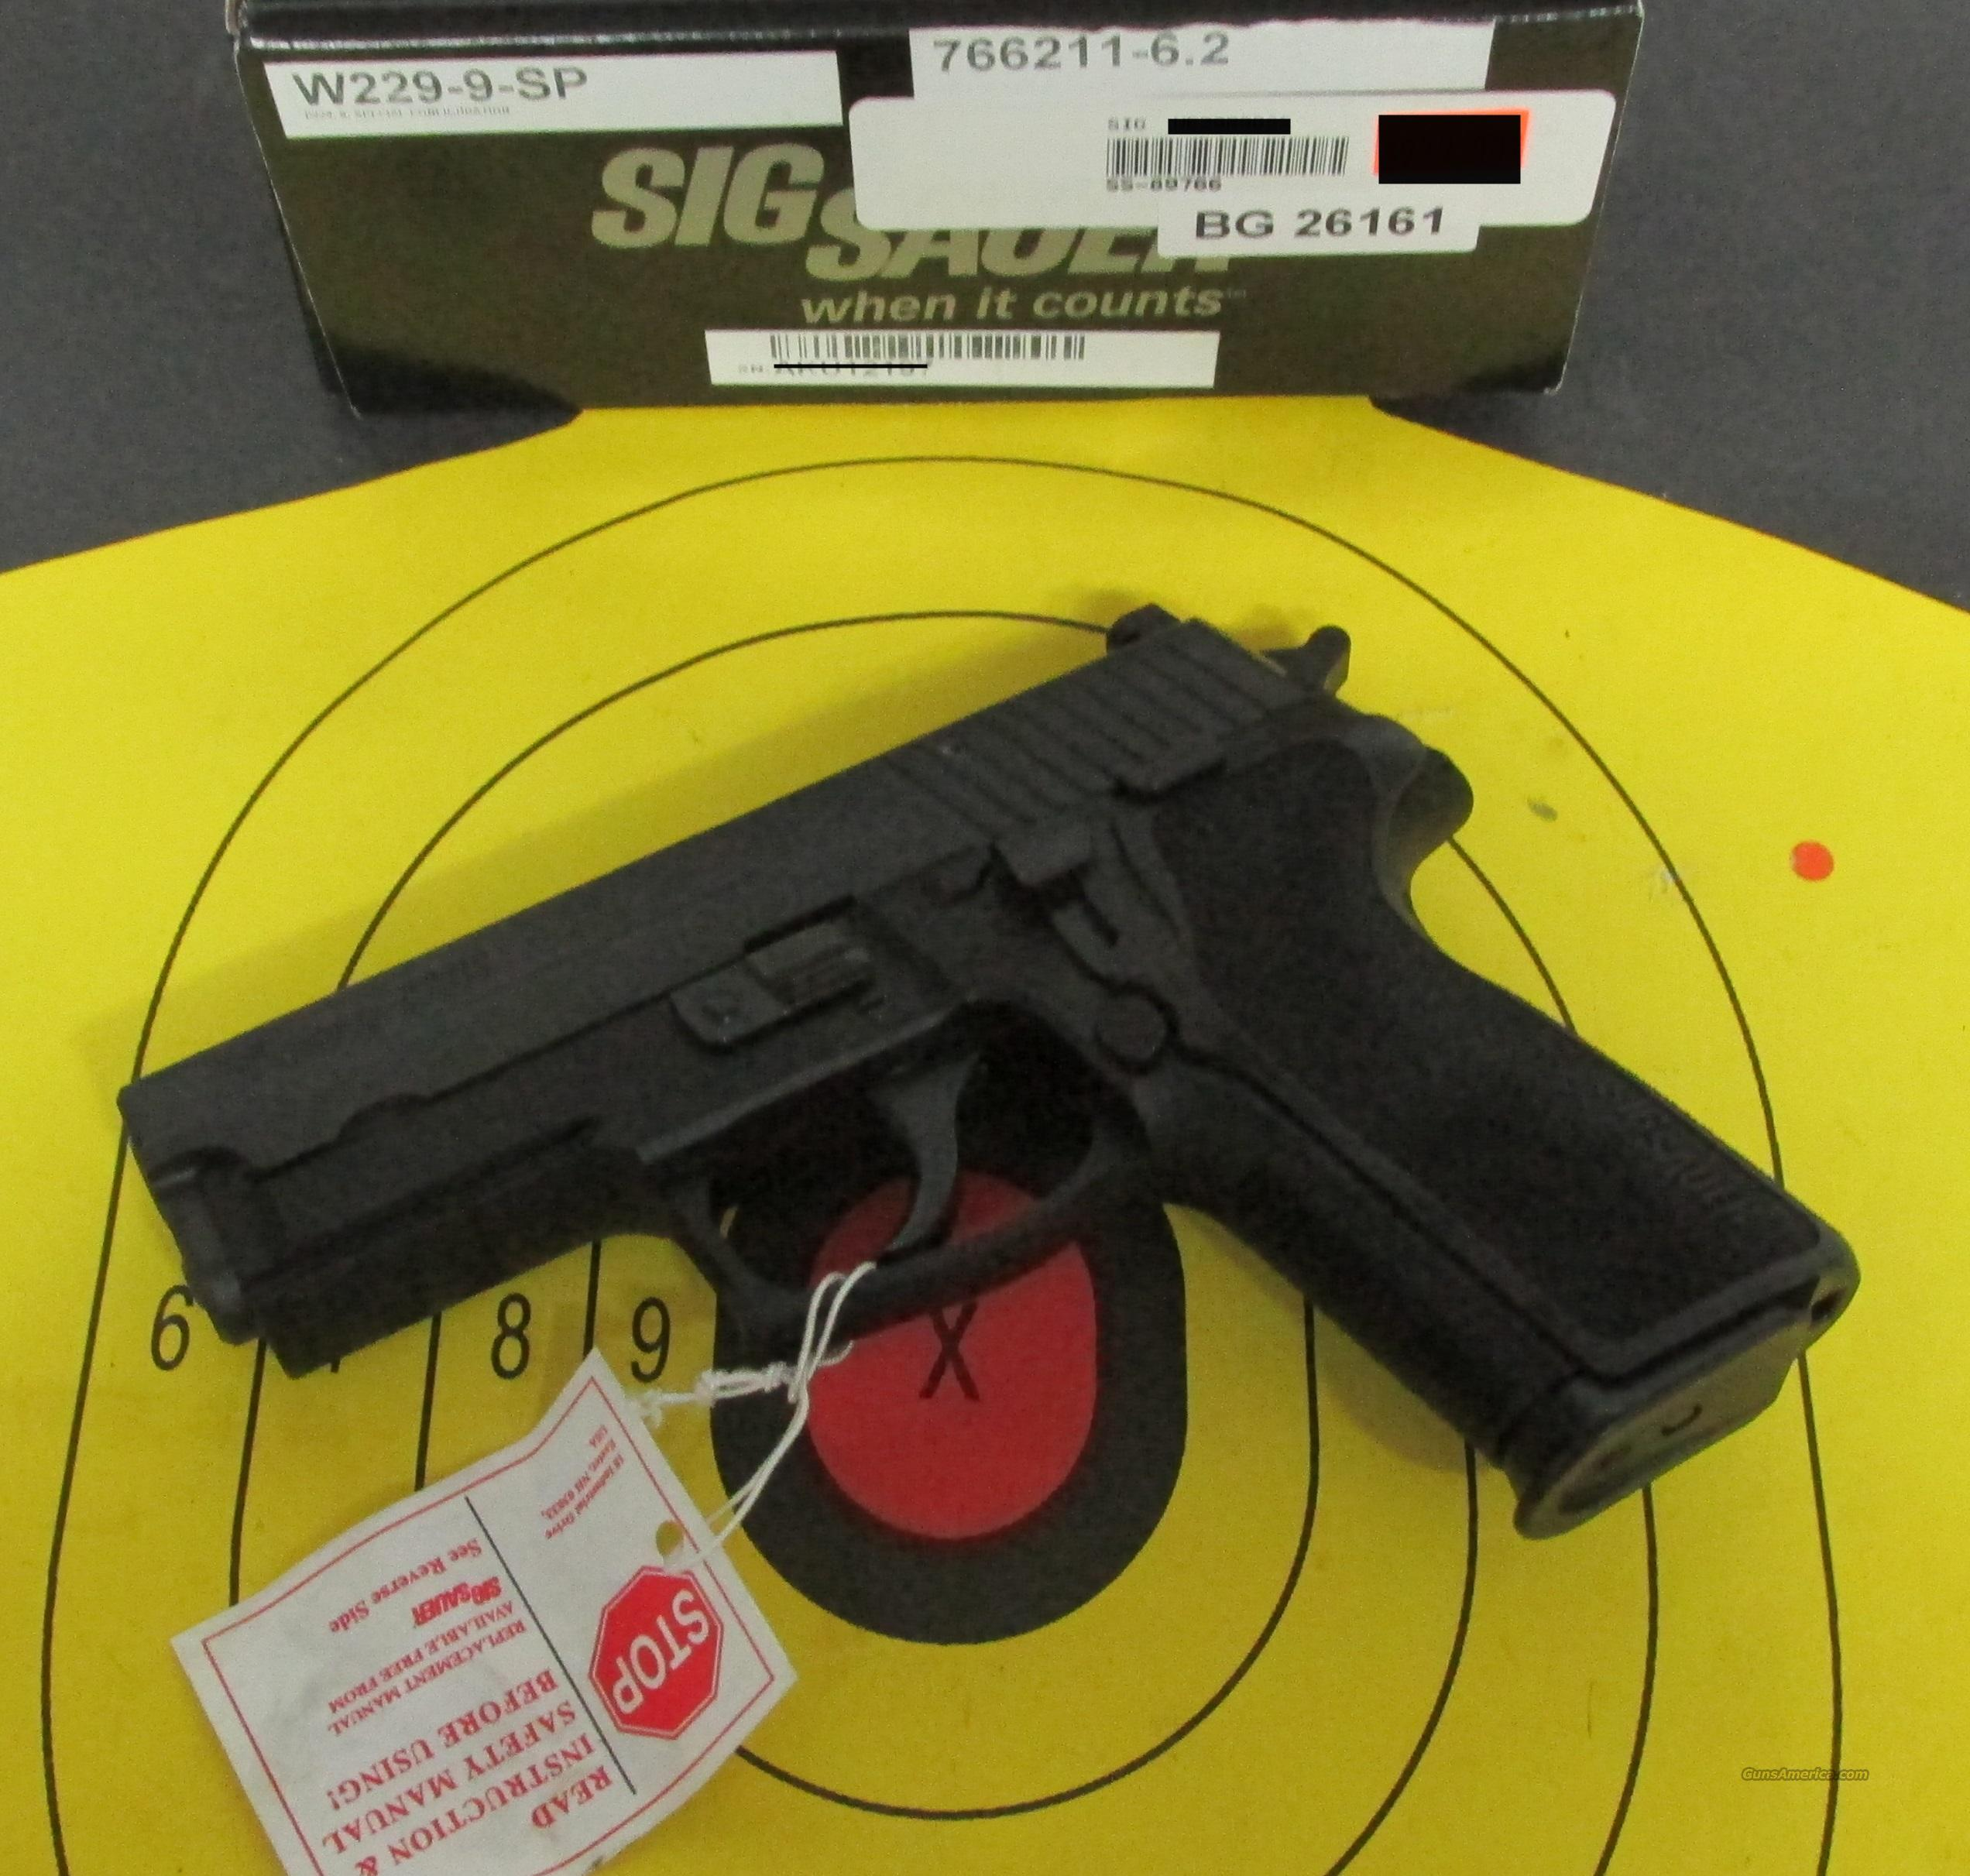 SIG SAUER W229-9-SP SPECIAL CONFIGURATION 9MM  Guns > Pistols > Sig - Sauer/Sigarms Pistols > P229